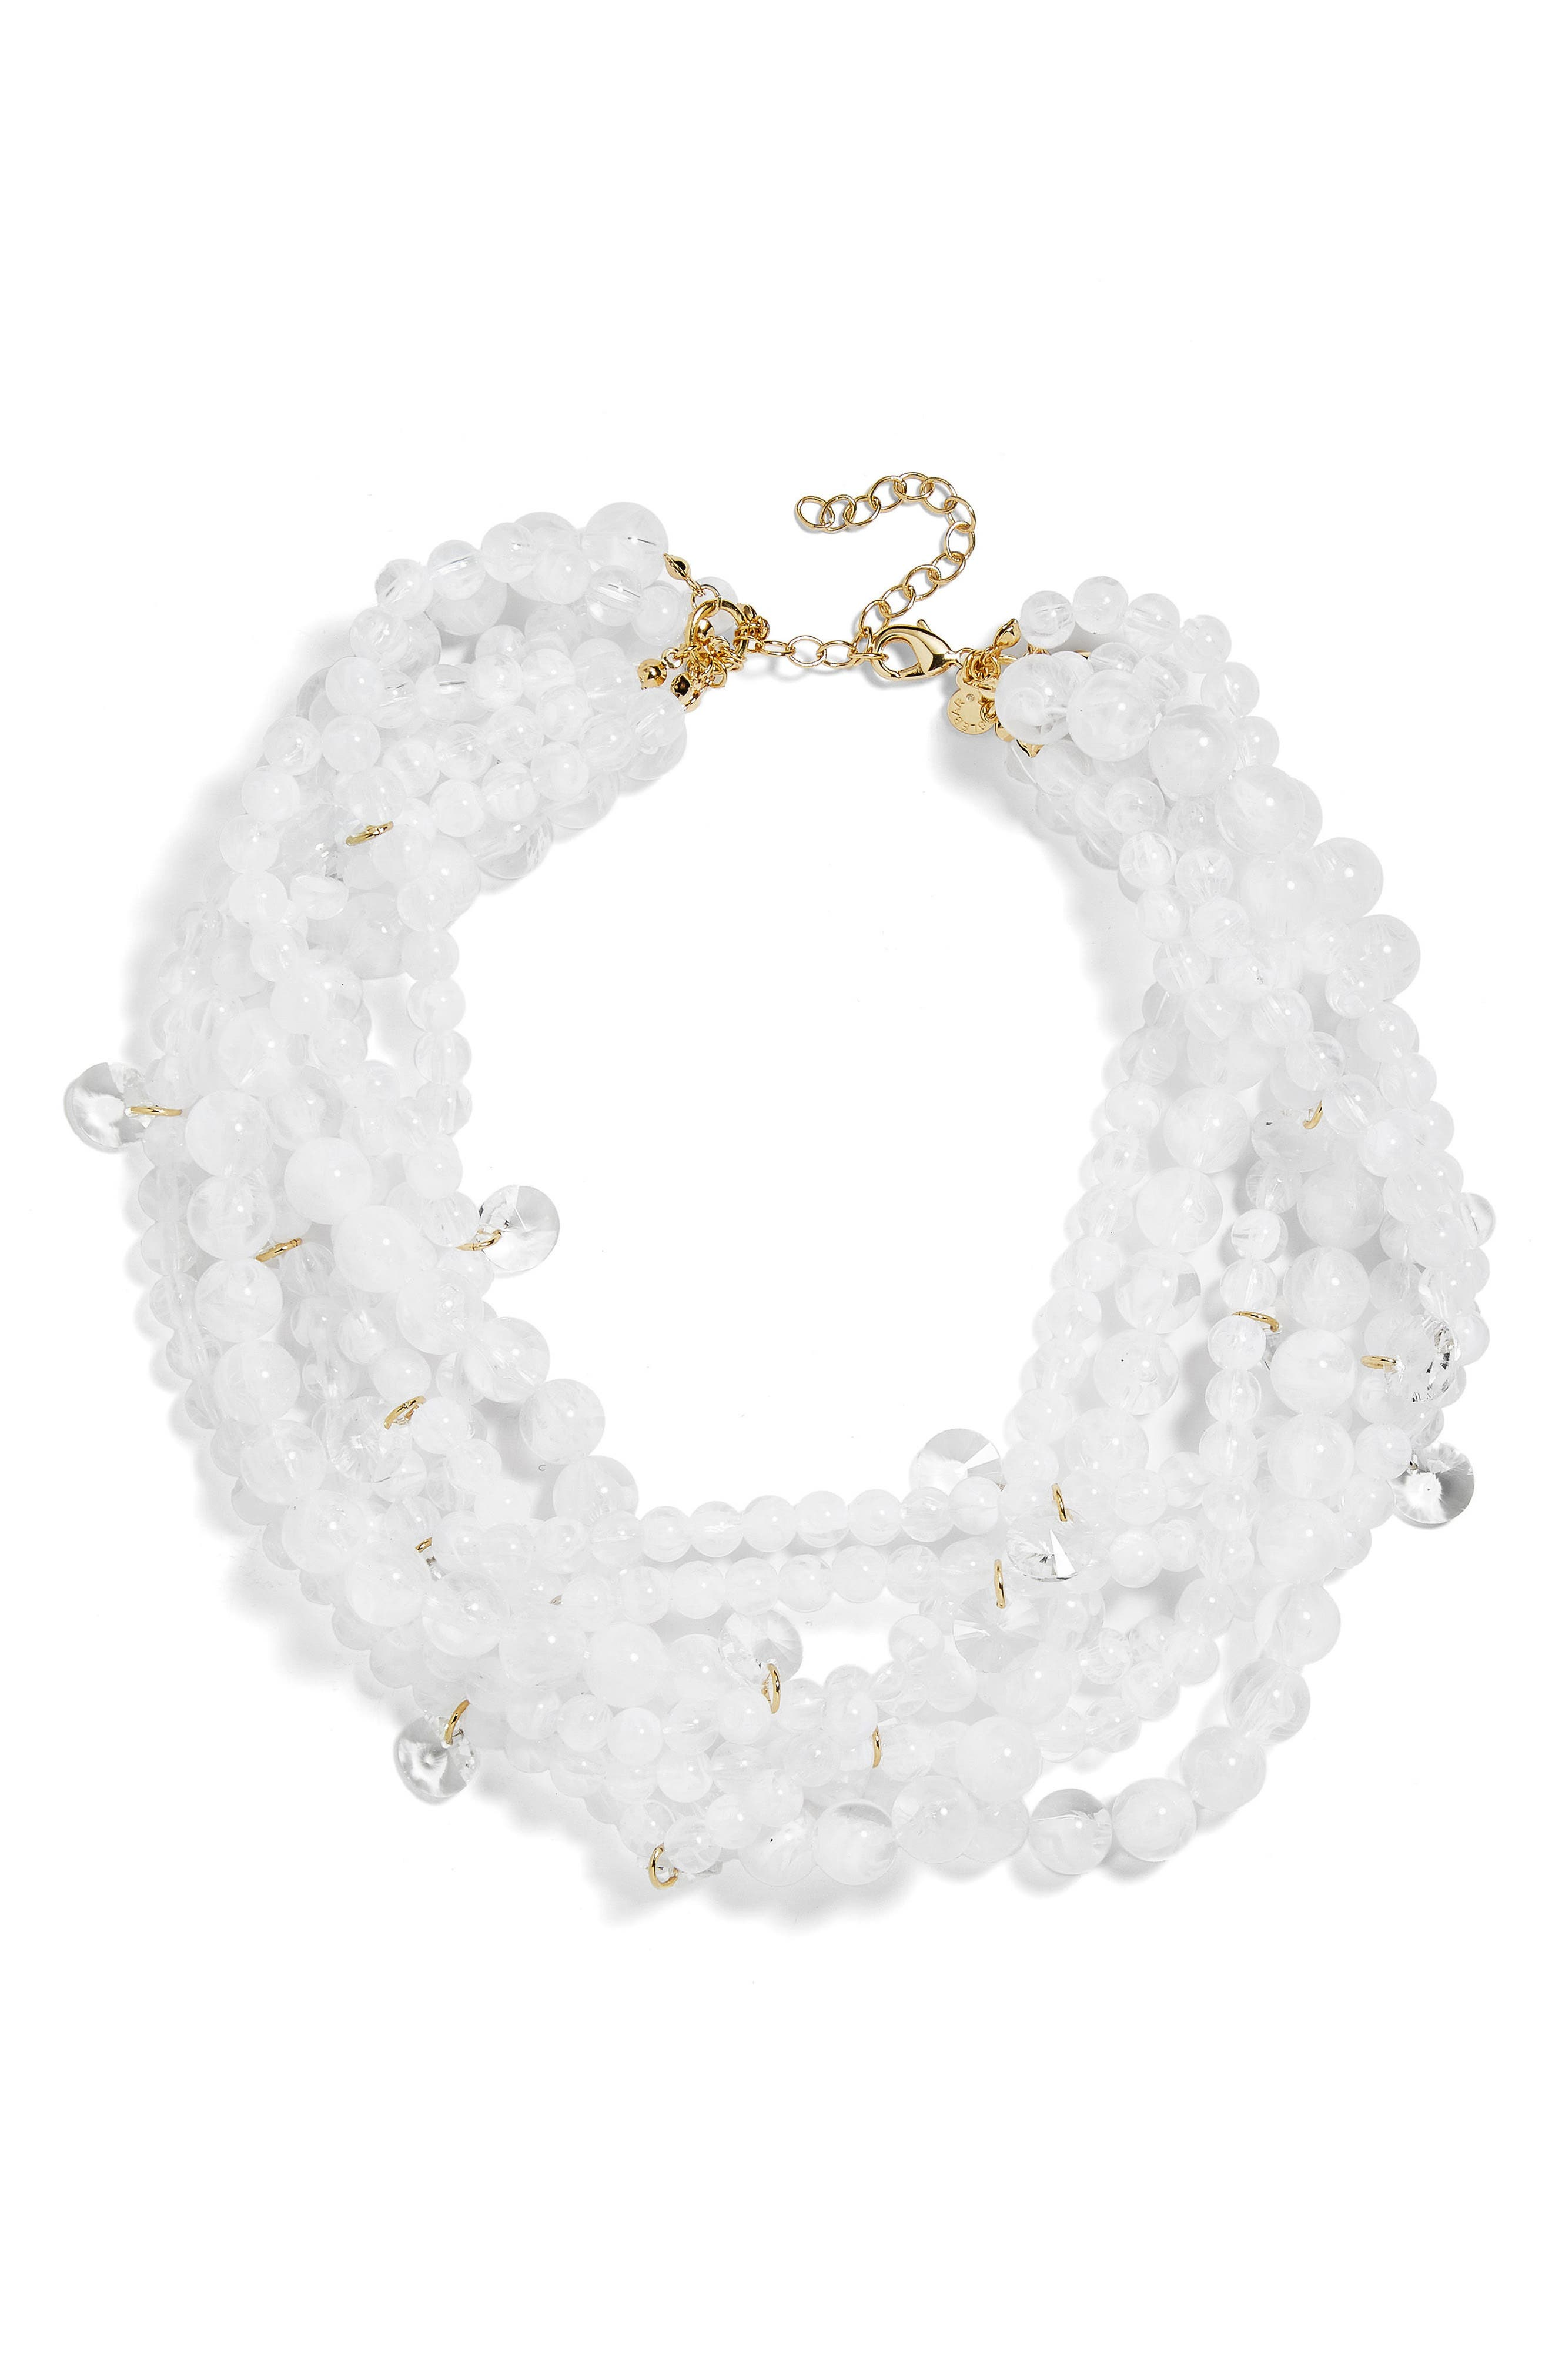 Bubblebeam Statement Necklace,                             Main thumbnail 1, color,                             White